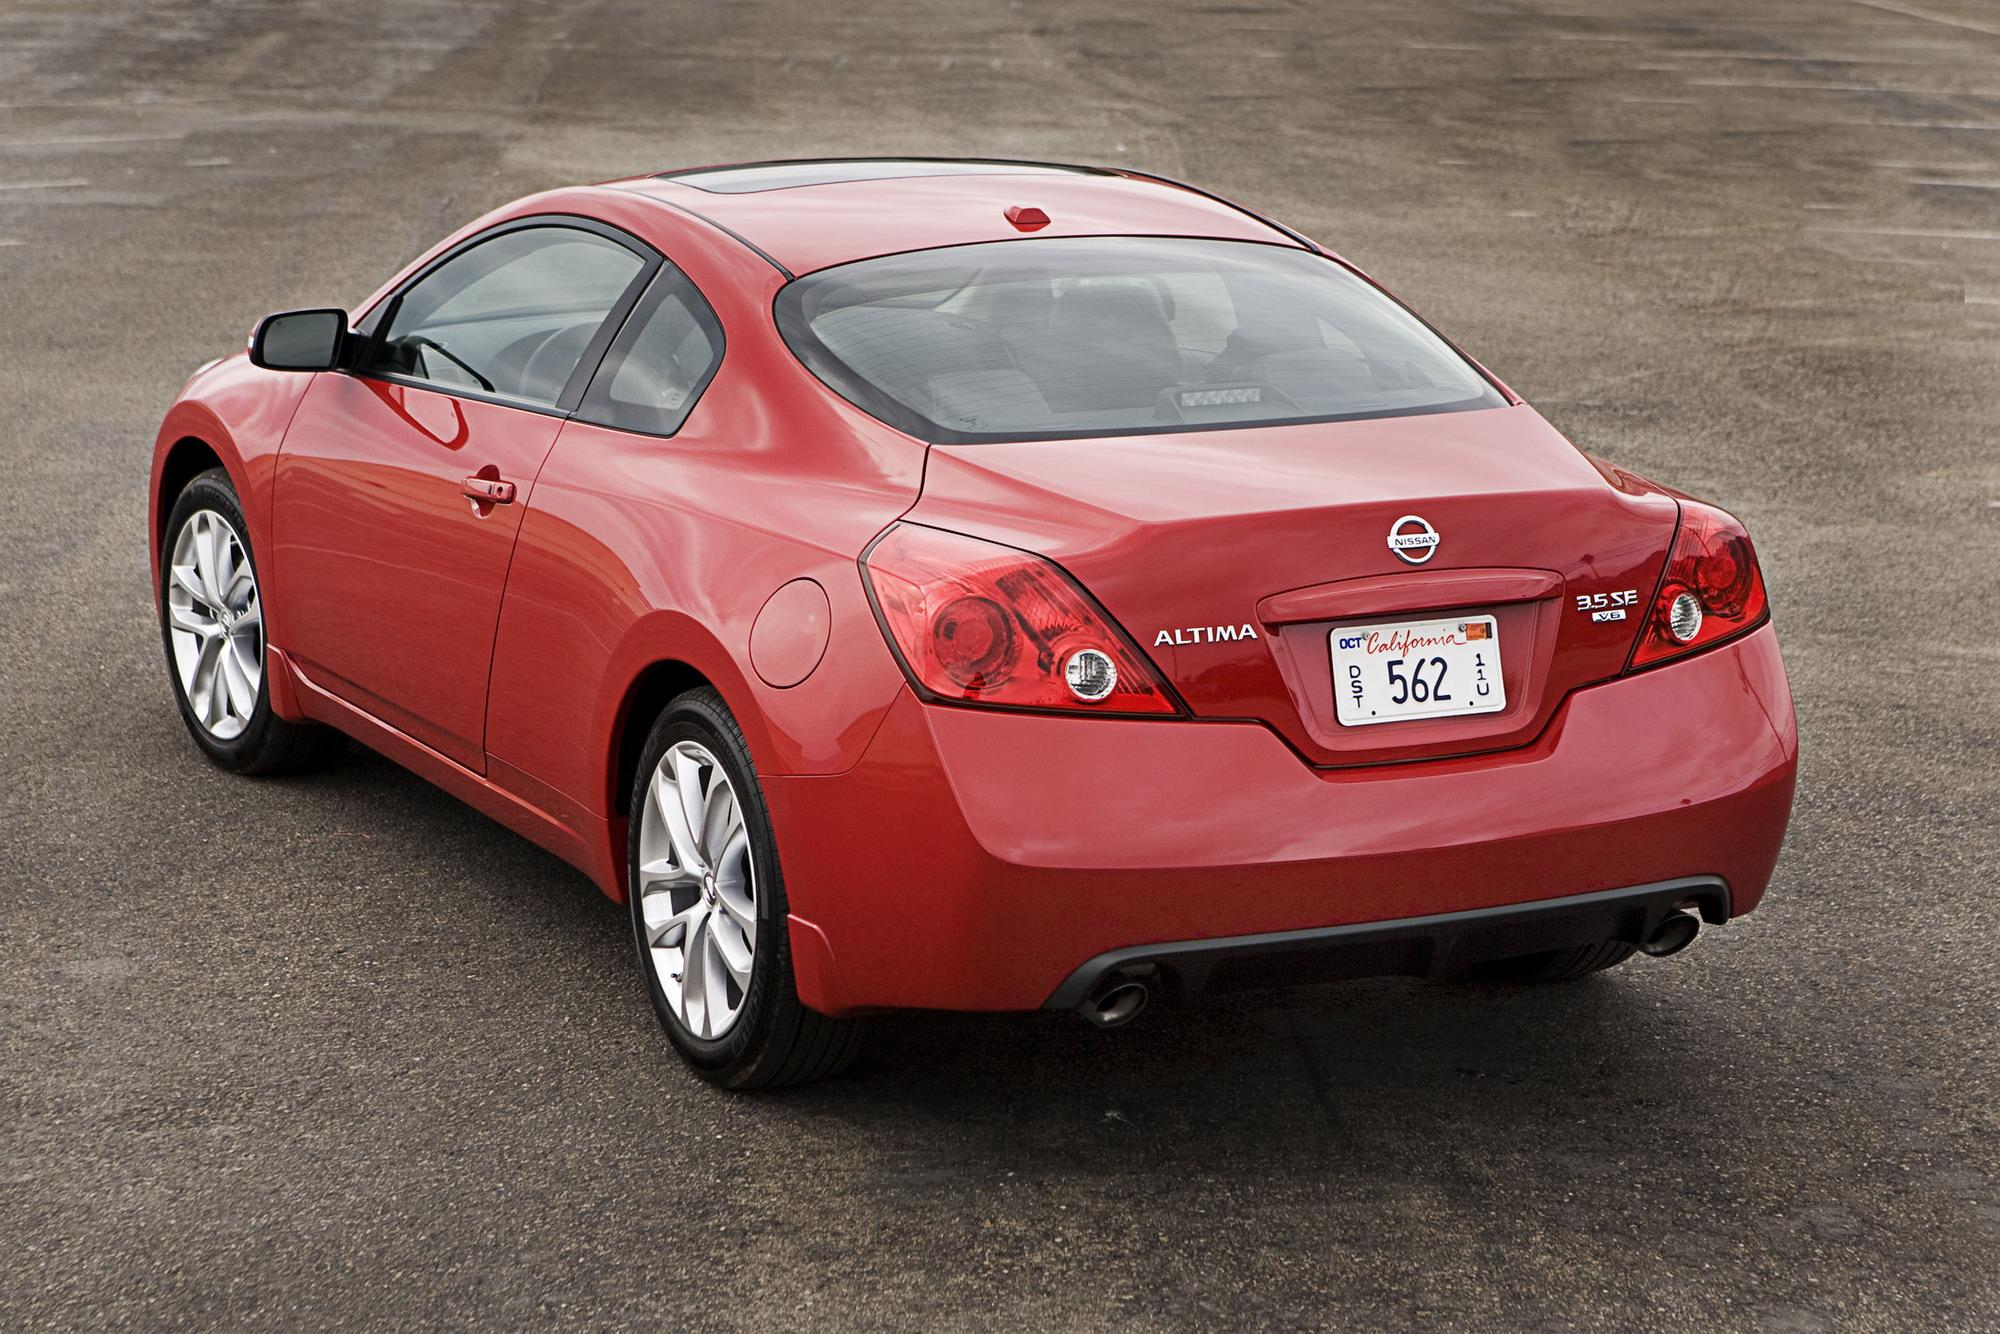 2009 Nissan Altima Coupe | Top Sd